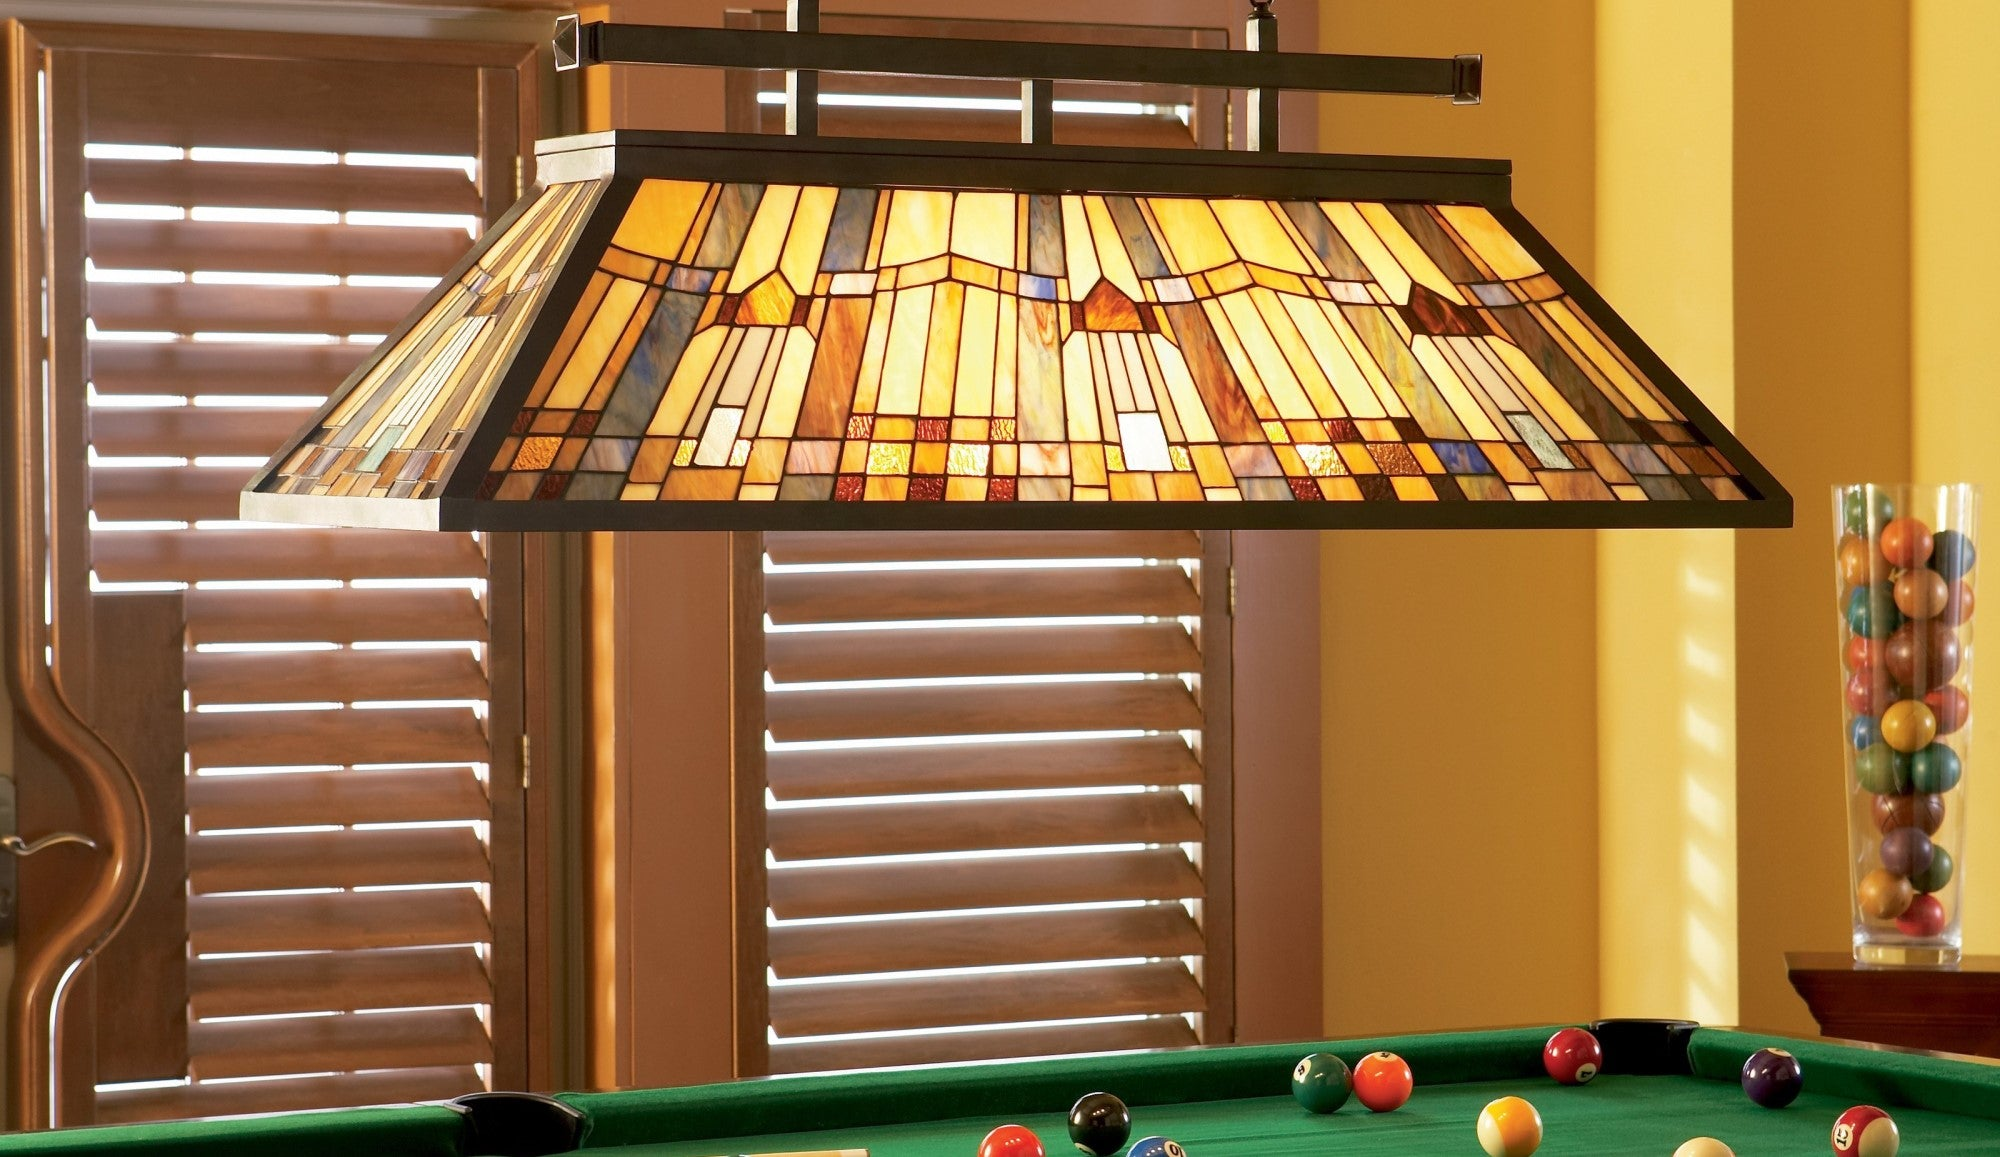 Top 6 Pool Table Lighting Options to Brighten Up Your Game Room